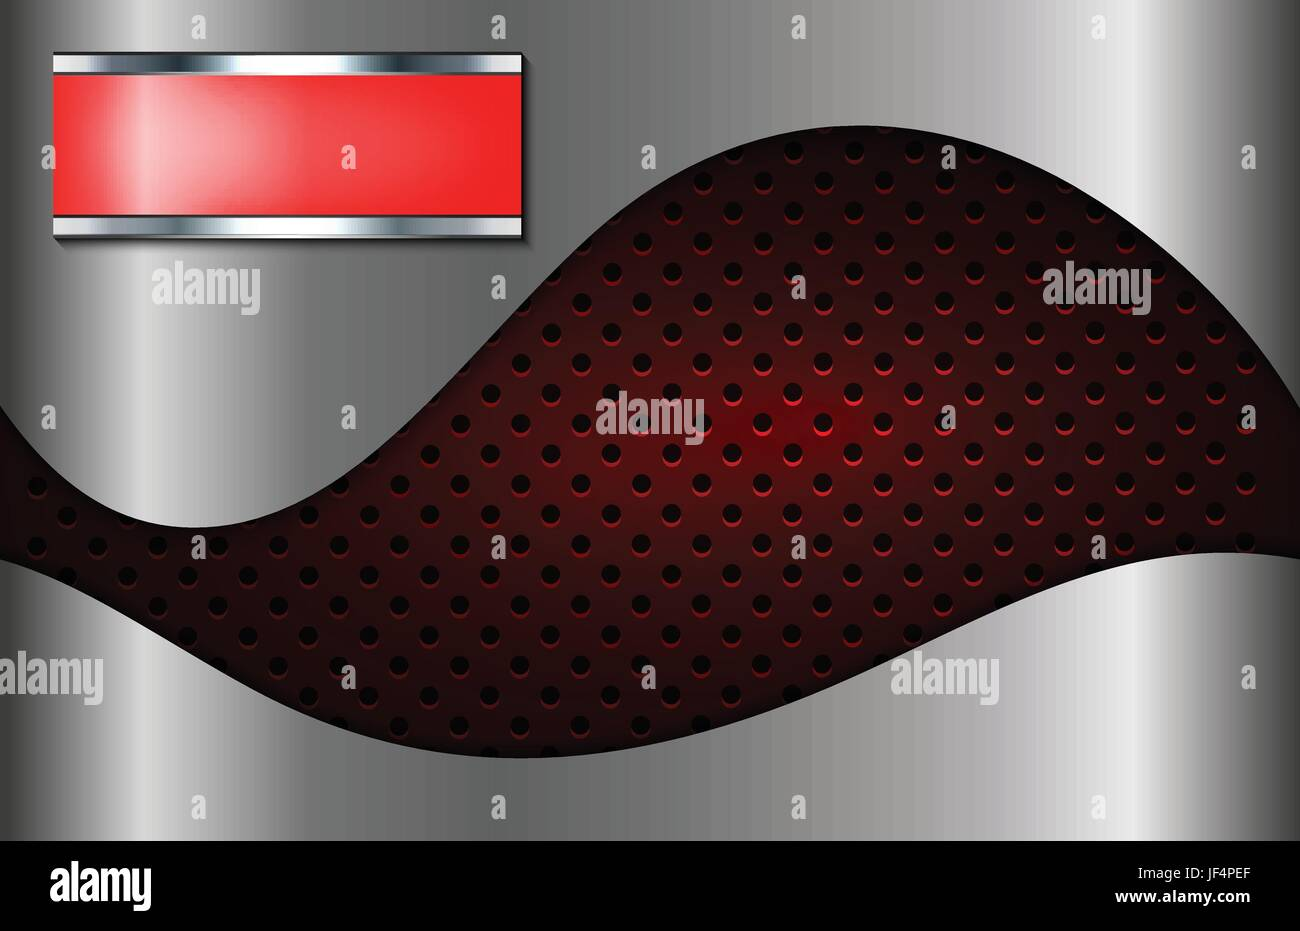 dots, banner, metallic, label, curve, shaddow, shadow, red, wave, dots, banner, - Stock Image